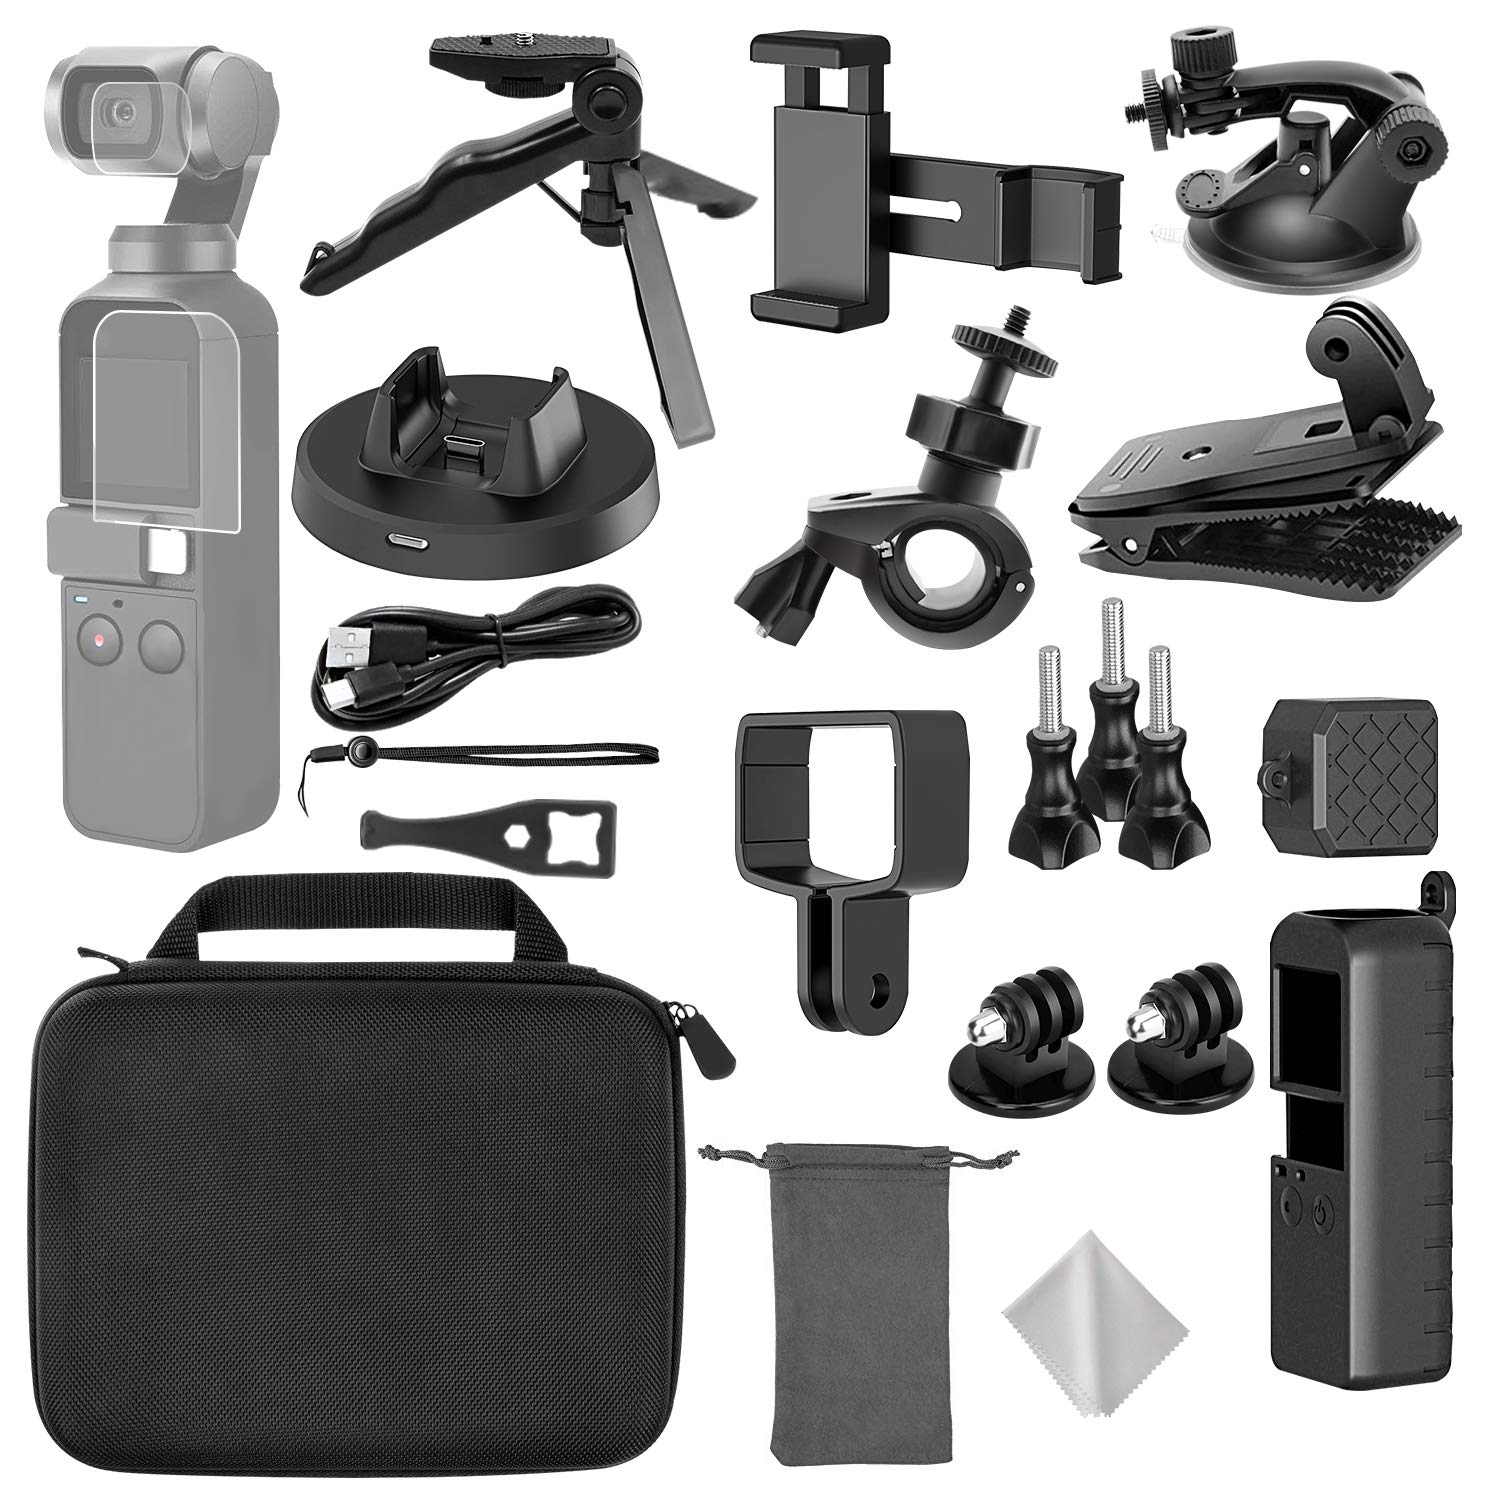 TONCHU 21-in-1 Expansion Kit for DJI OSMO Pocket Action Camera Mounts,Accessory Bundle kit for Carrying Case/Mobile Phone Holder/Charging Base/Tripod/Car Suction Cup Bracket/Strap Clip and More by TONCHU